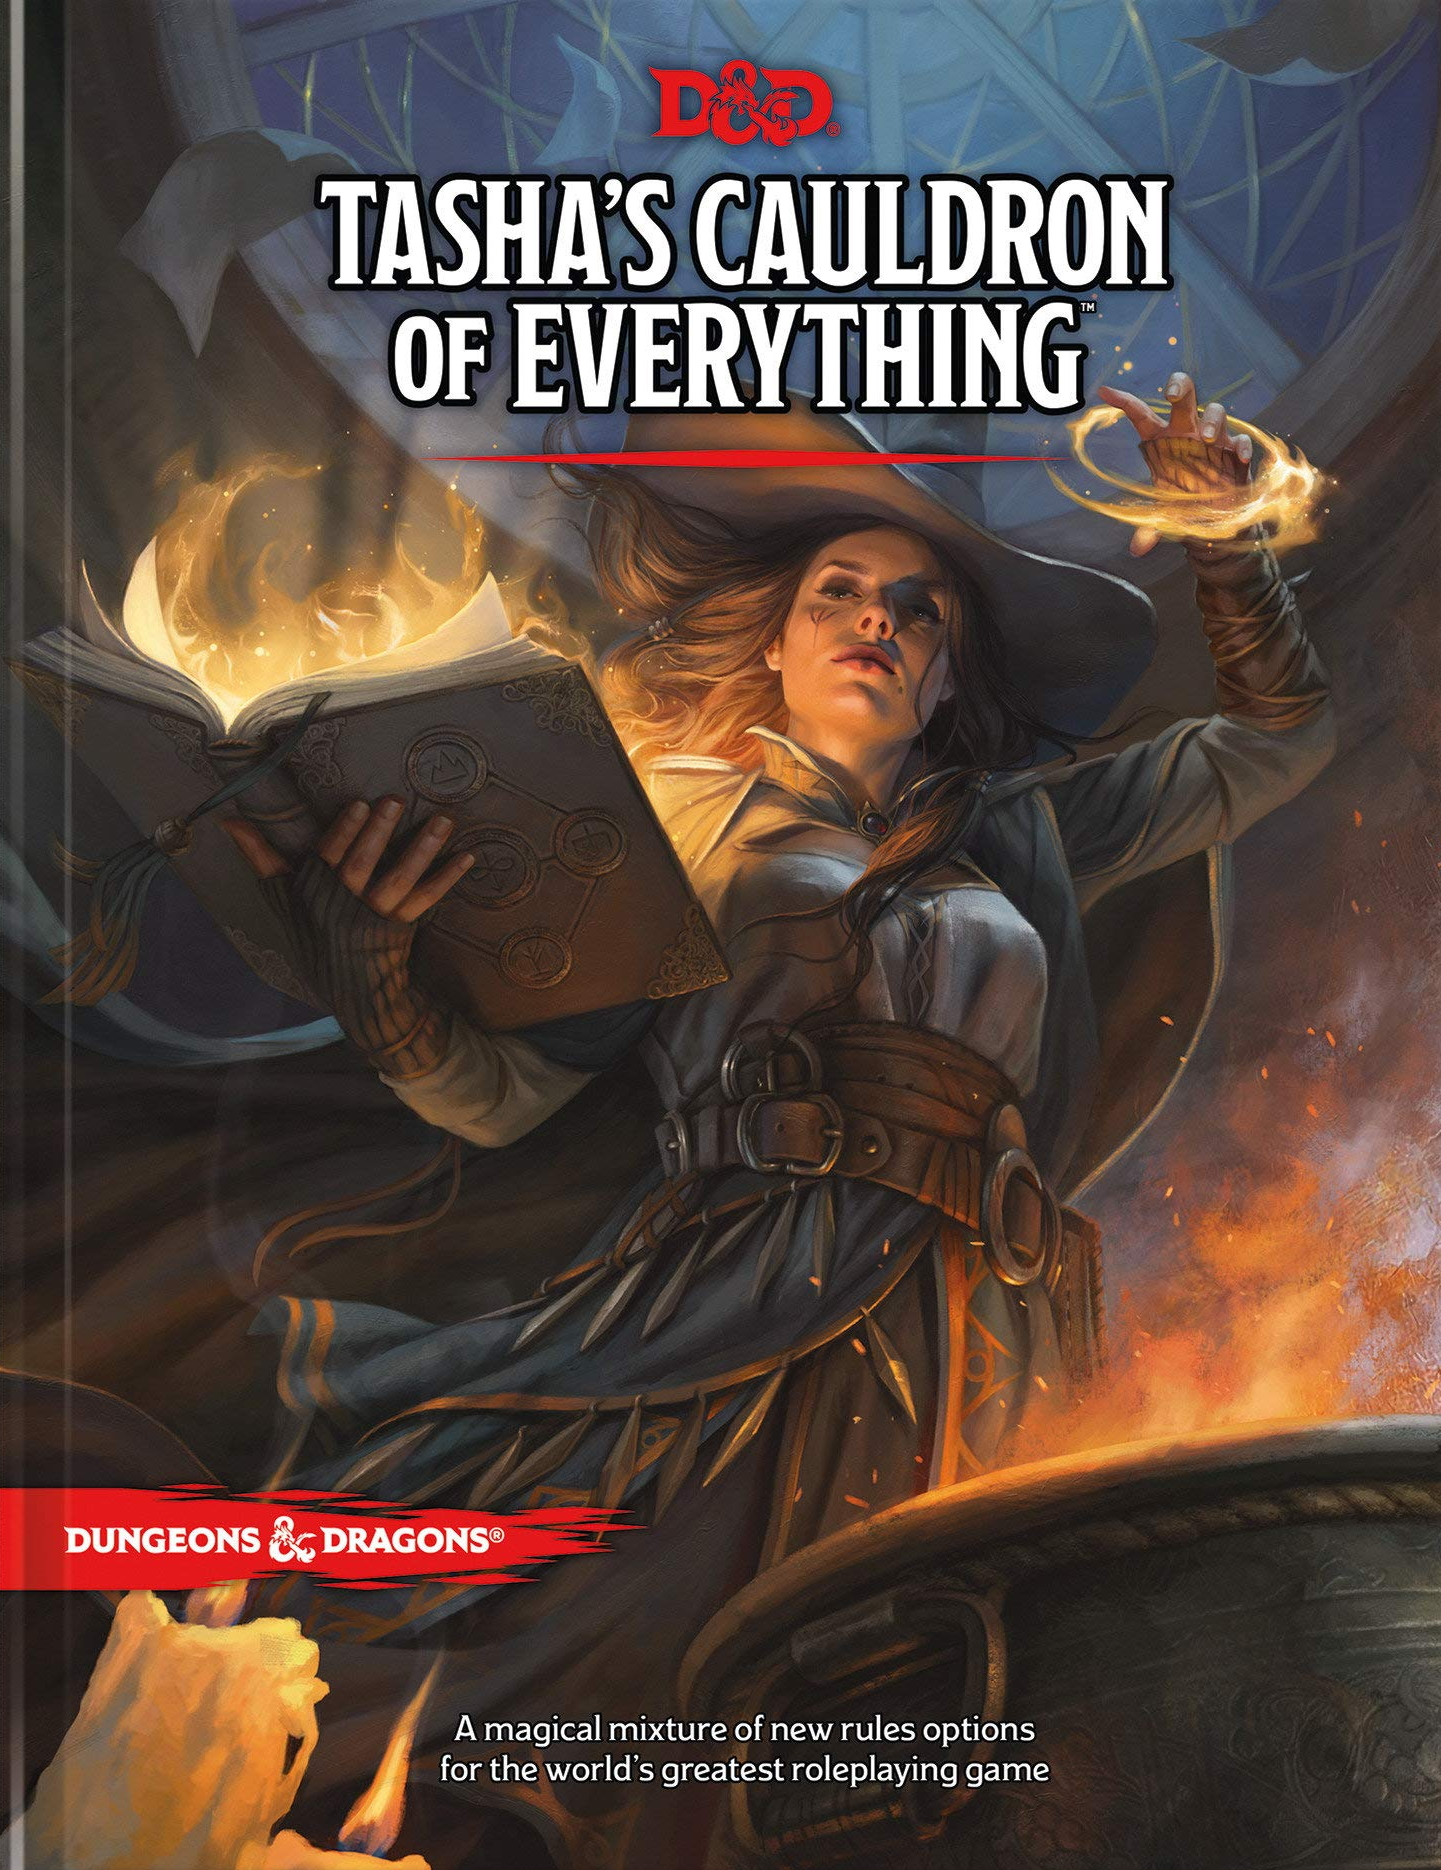 D&D: Interview about new rules of Tasha's Cauldron of Everything